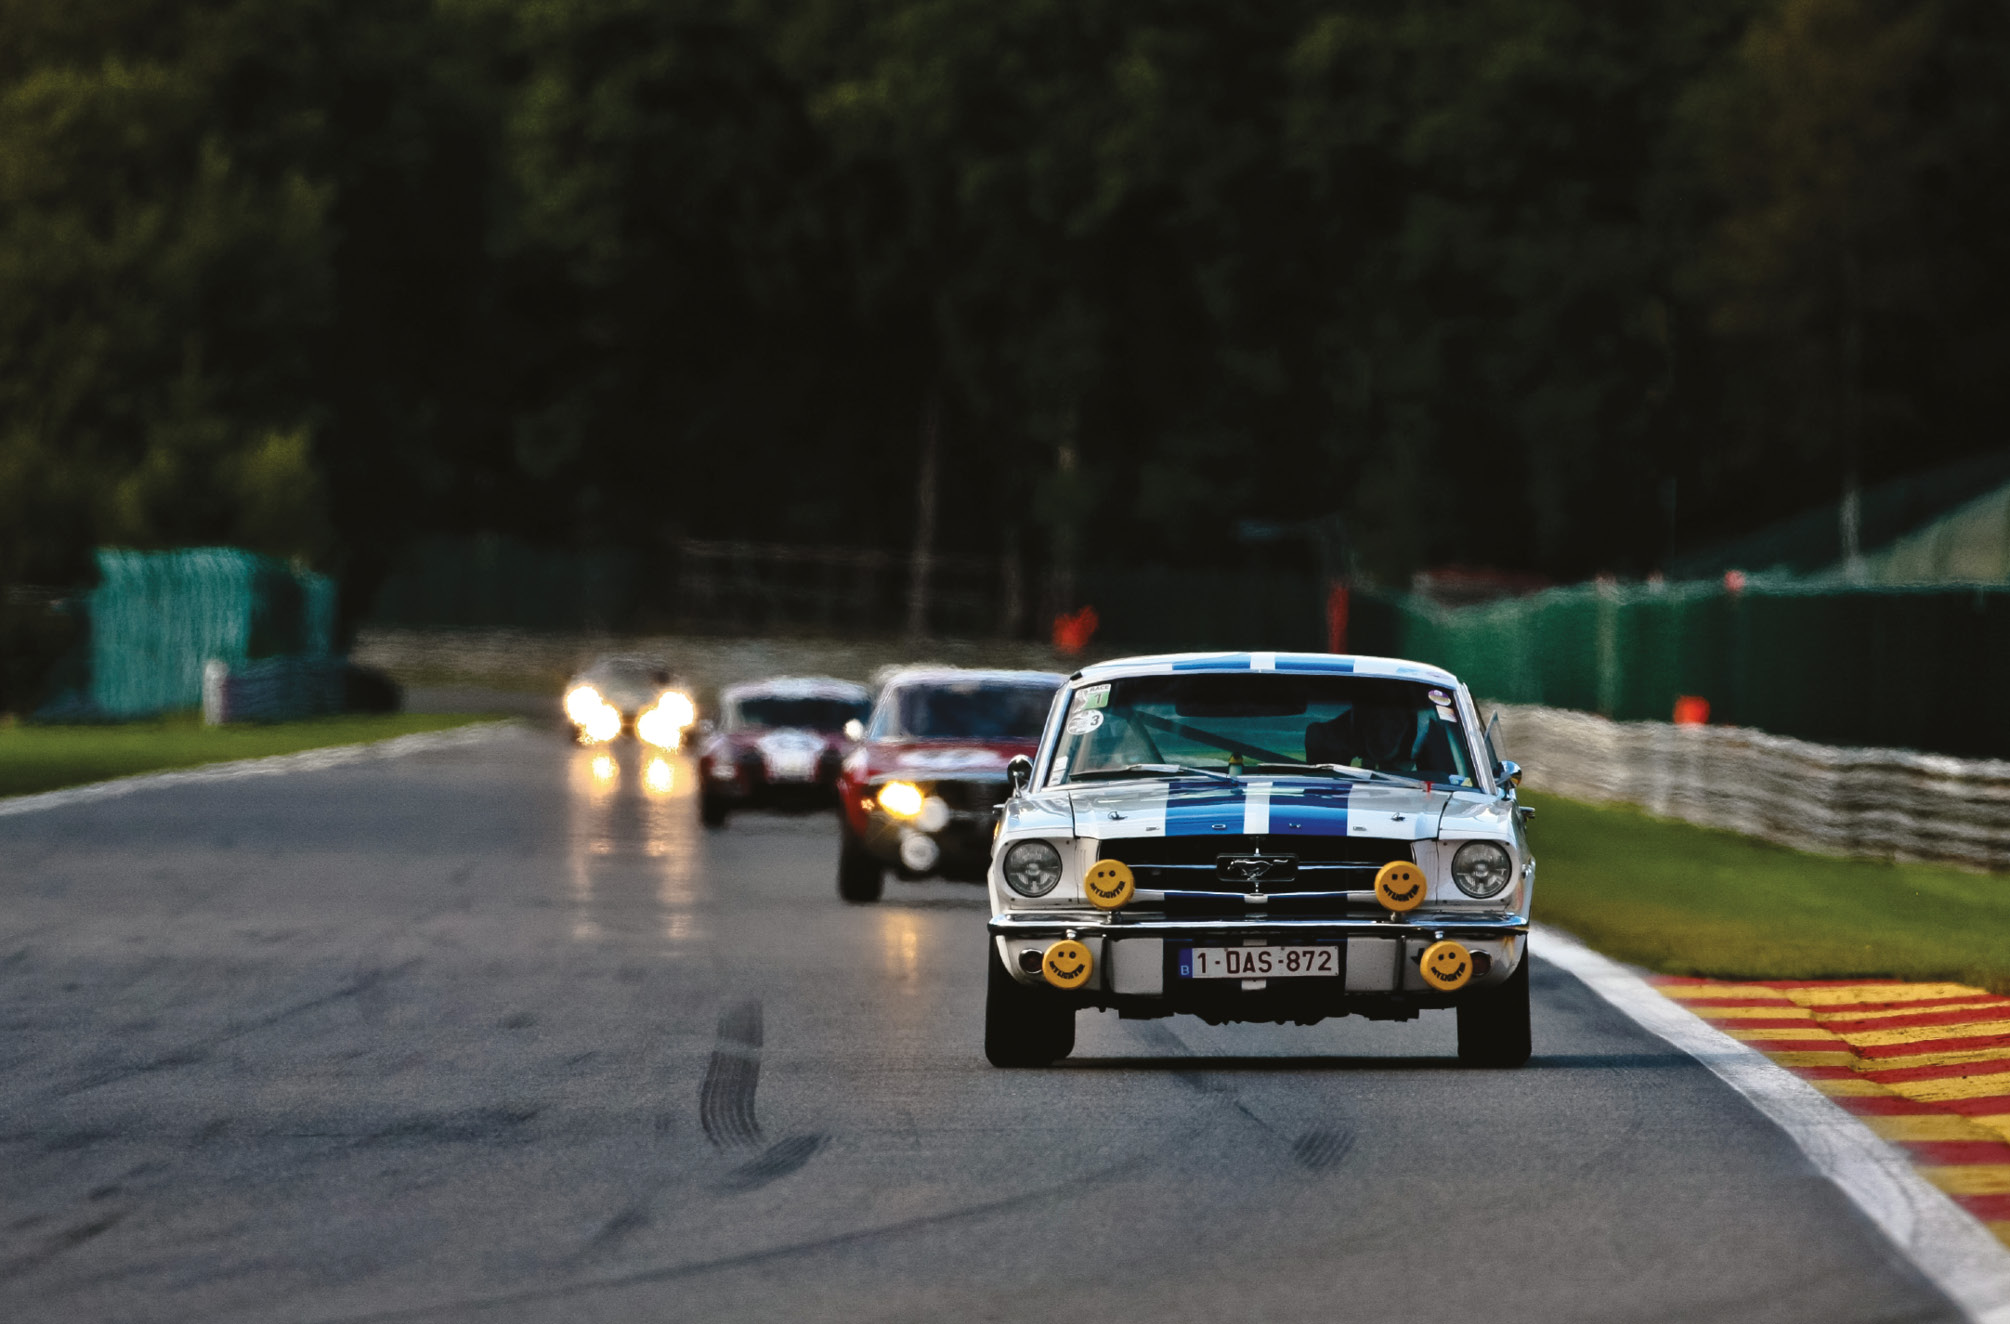 The annual Spa Six Hours event features great variety on its grid and is supported by some British clubs, like the HSCC and Masters